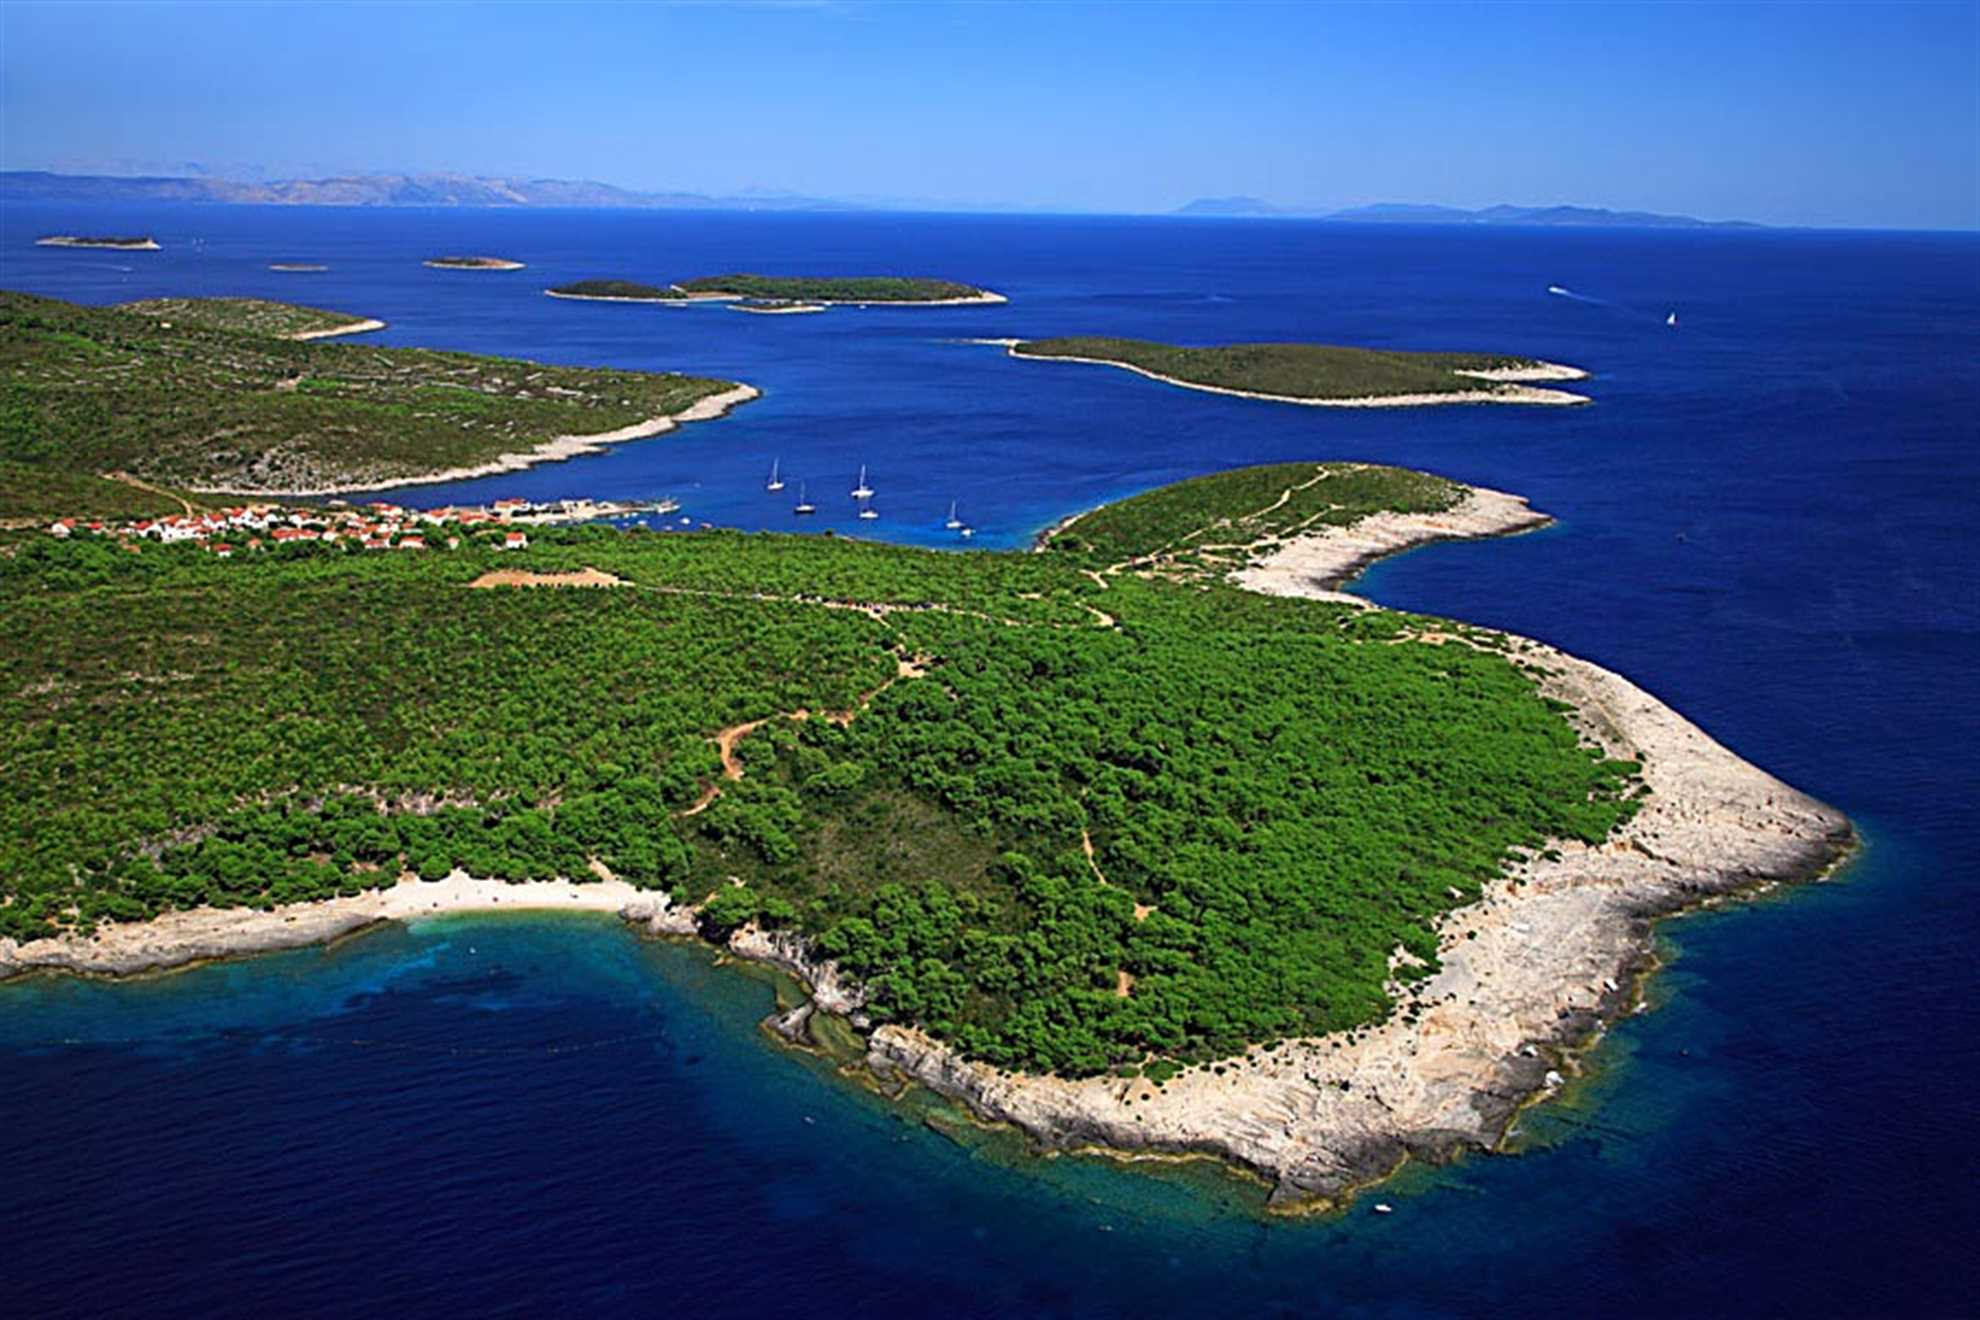 Island of Vis in Croatia